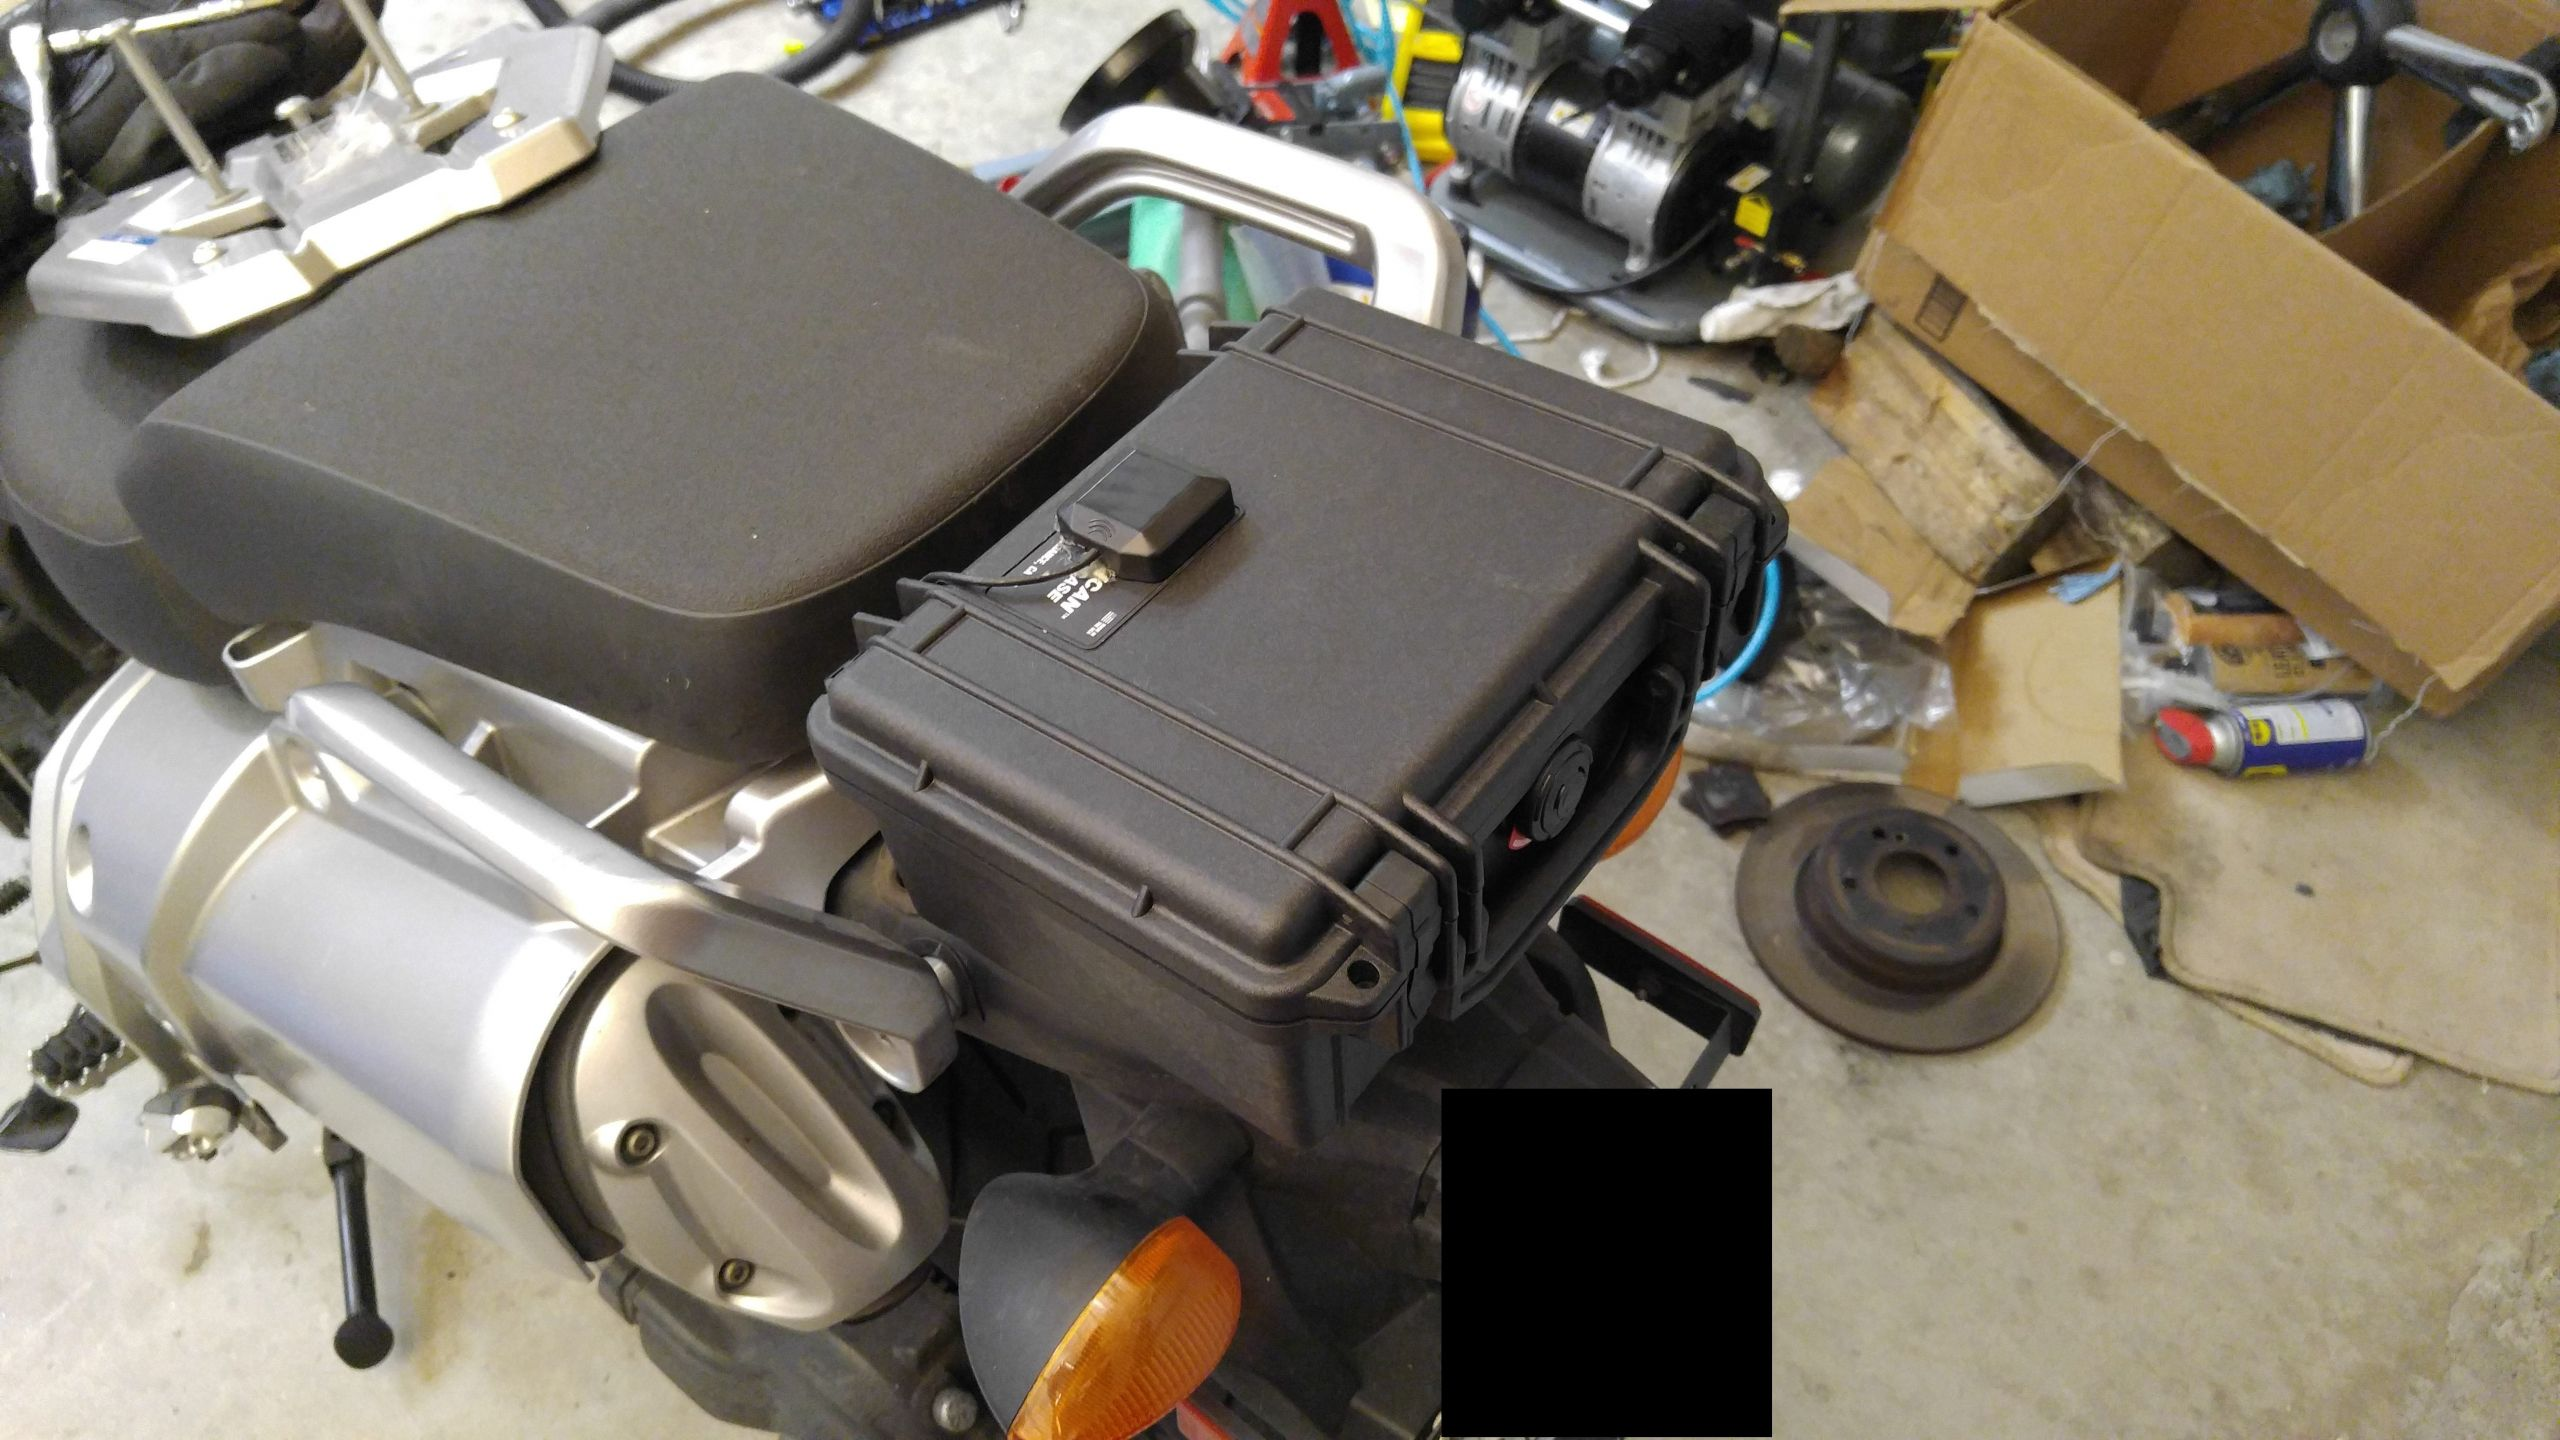 DIY Motorcycle Luggage Rack  Swapped out my luggage rack with a tiny pelican case I